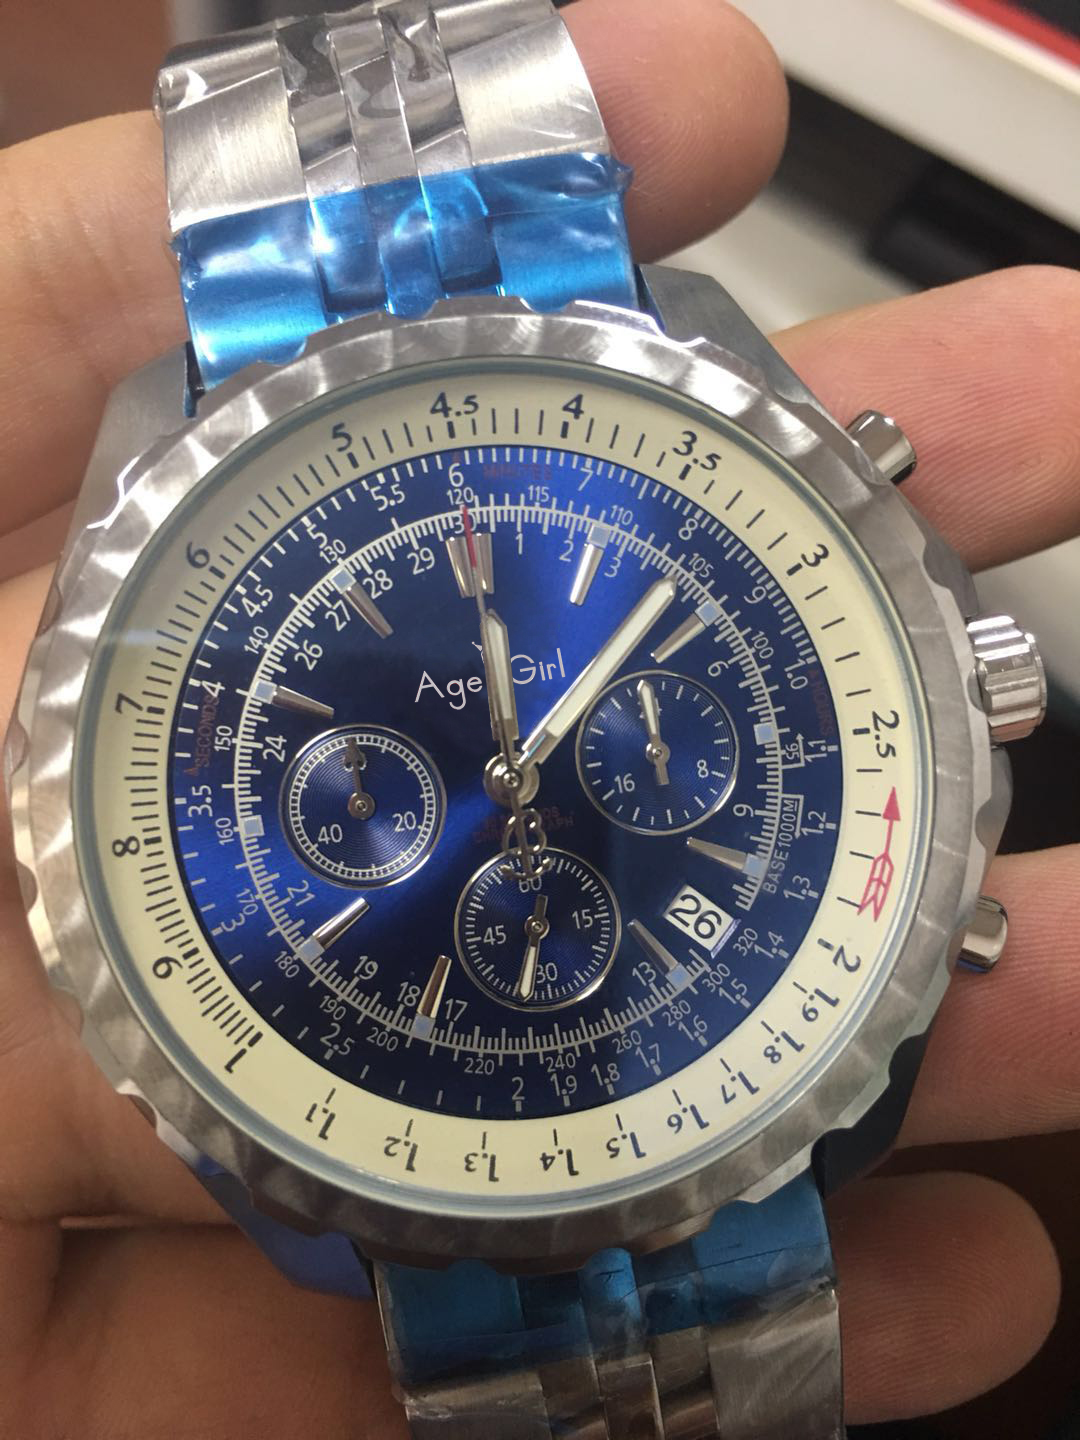 Luxury Brand New Men Watch Automatic Mechanical Chronograph Stopwatch Black Blue Stainless Steel Sapphire Sport Gent Watches AAALuxury Brand New Men Watch Automatic Mechanical Chronograph Stopwatch Black Blue Stainless Steel Sapphire Sport Gent Watches AAA